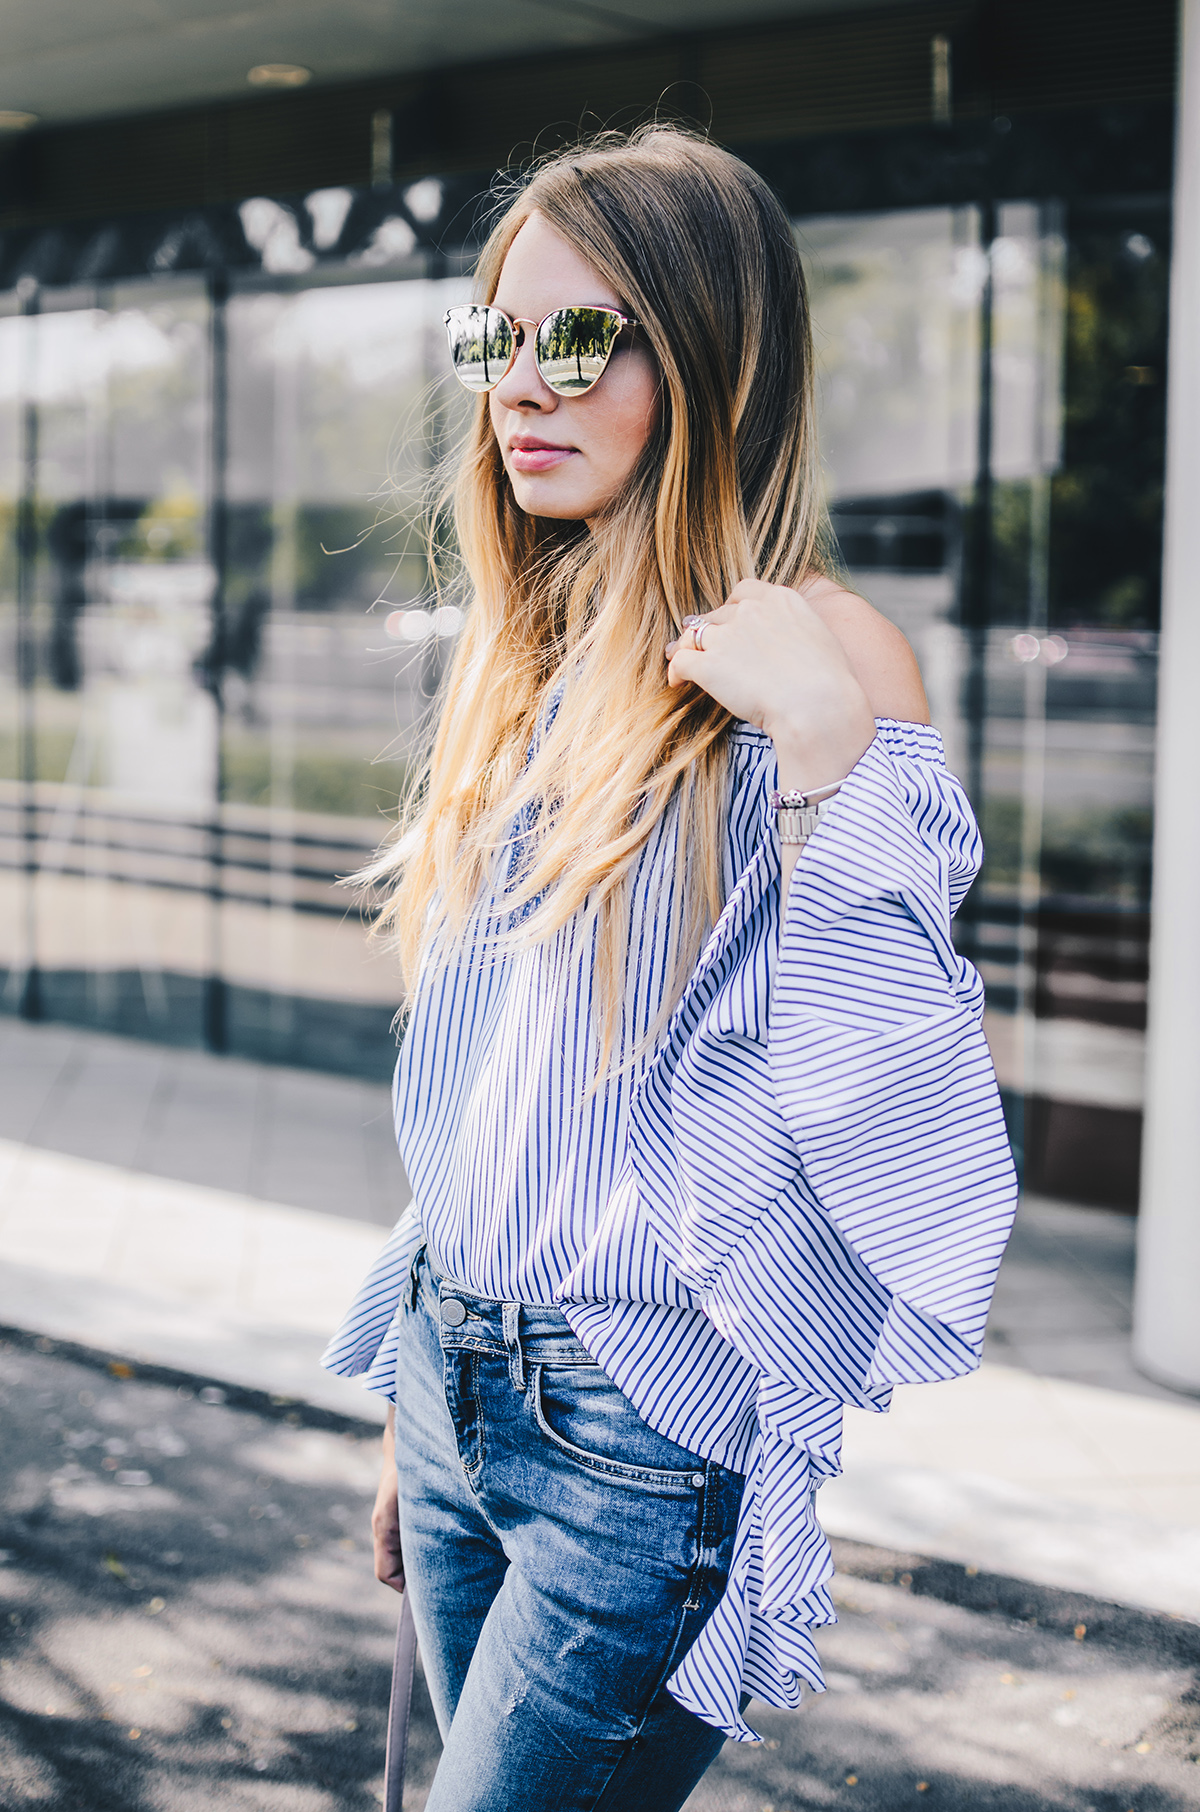 off-shoulder-ruffle-sleeves-zara-jeans-mirroredsunglasses-scarf-6